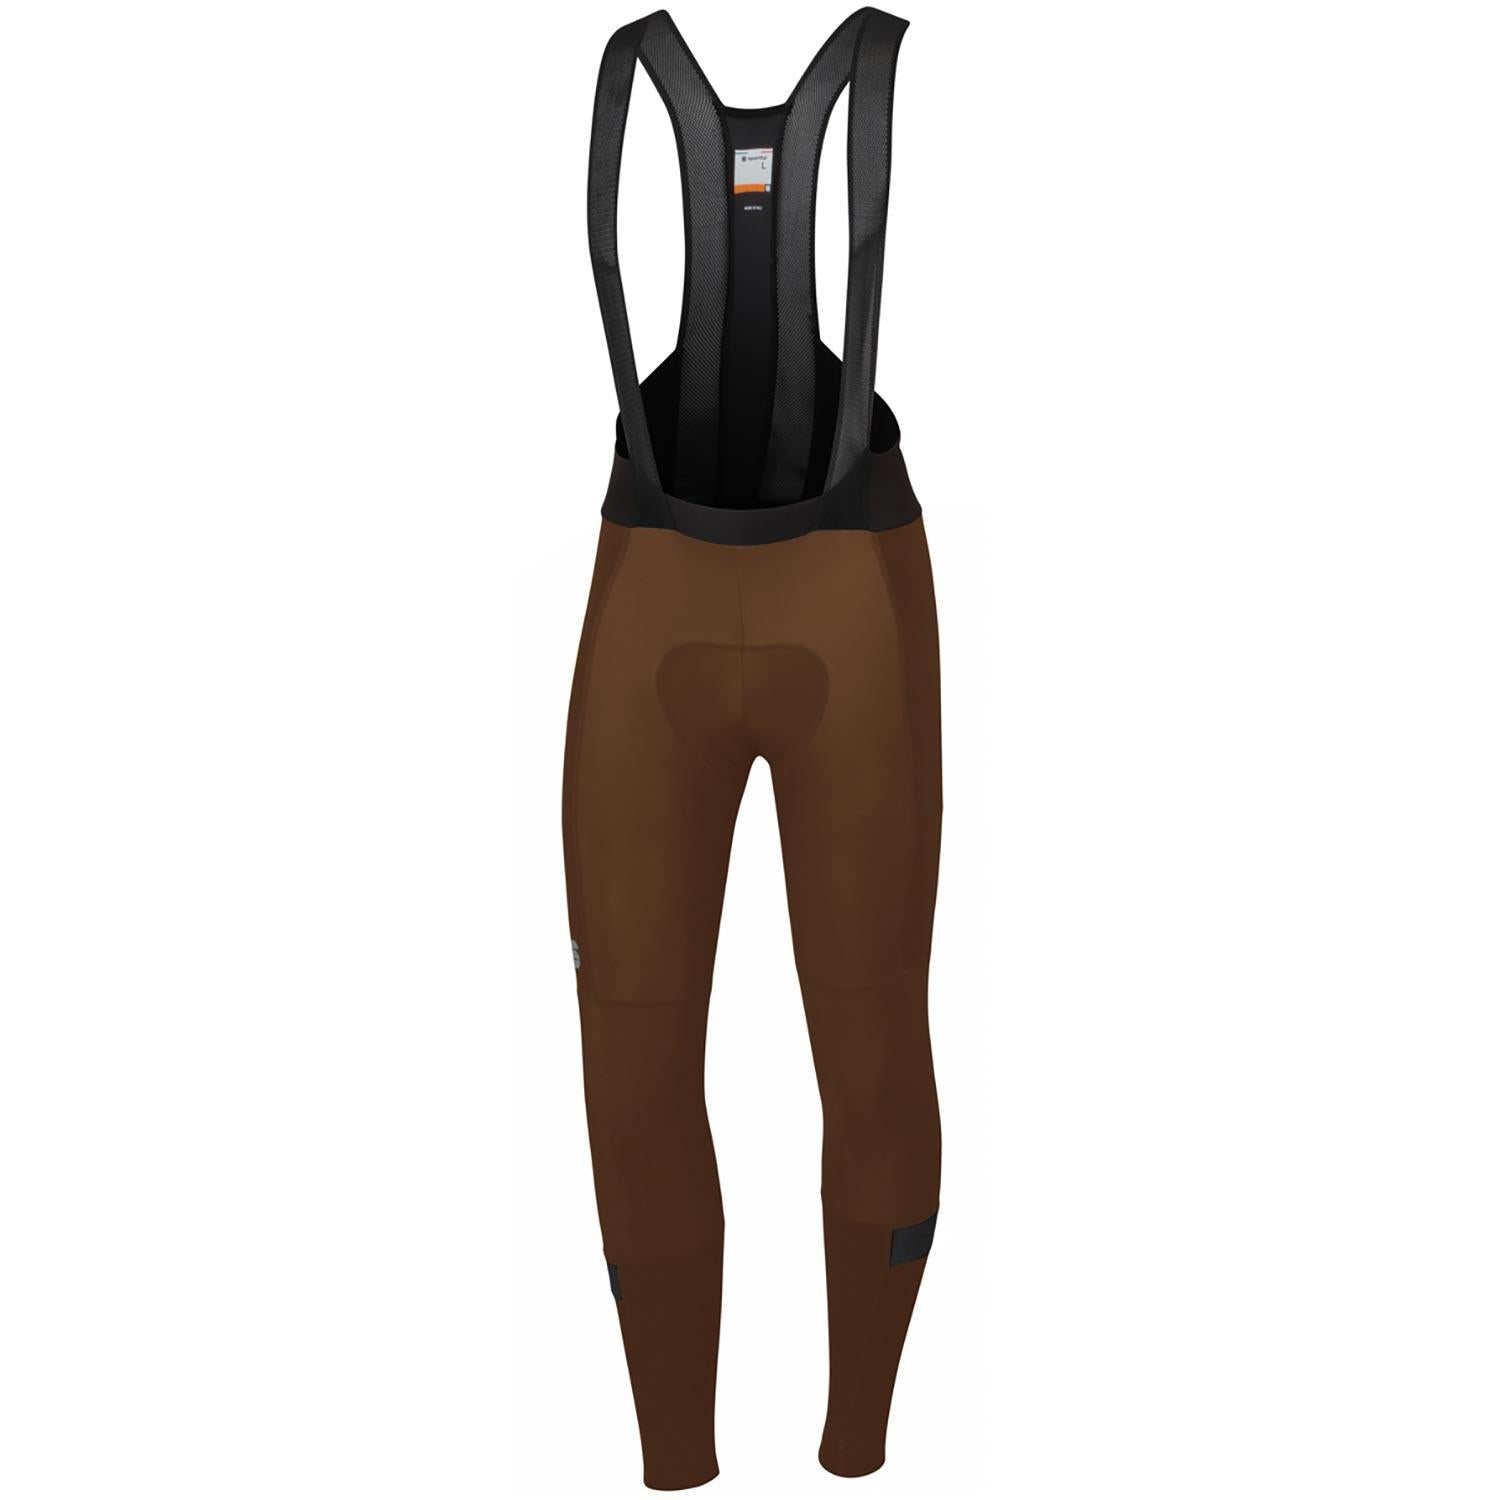 Sportful-Sportful Supergiara Bibtights-Chocolate-S-SF195102422-saddleback-elite-performance-cycling